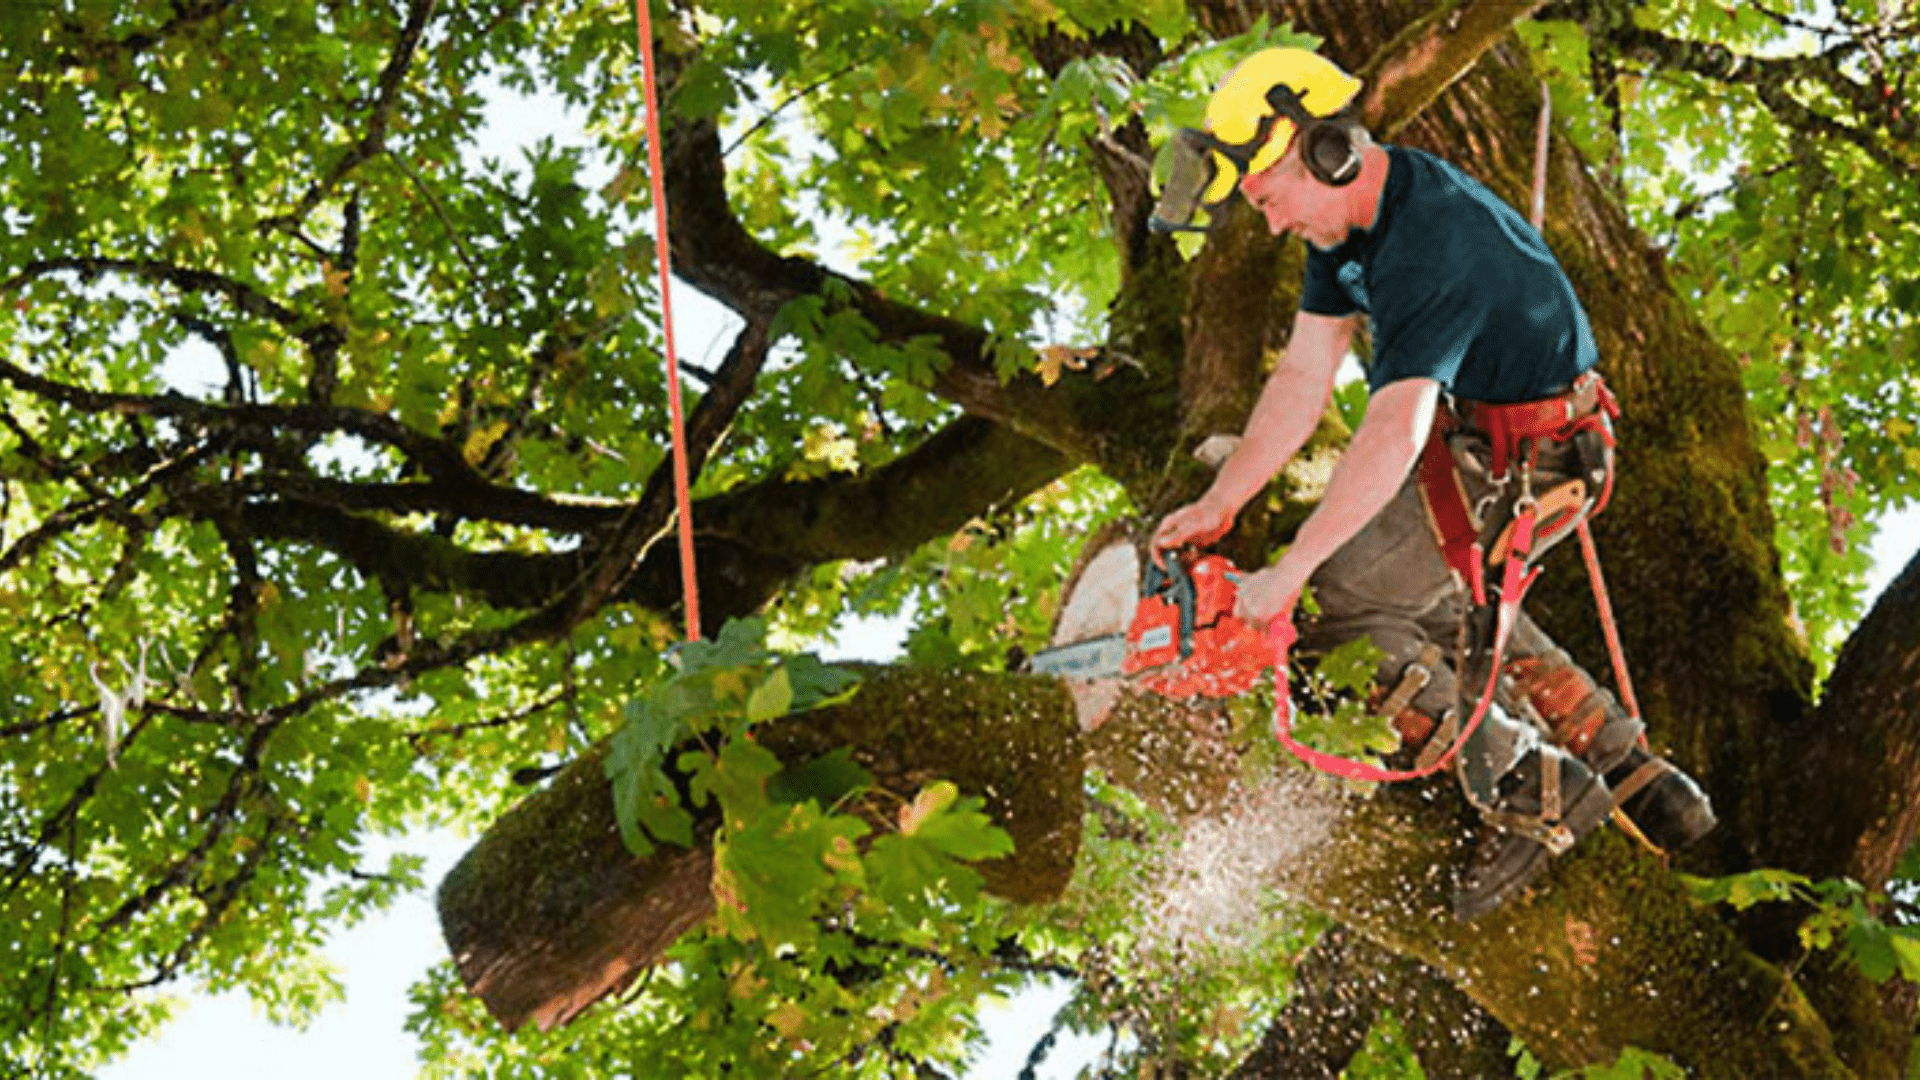 How to find a good tree service company in Lansing Michigan